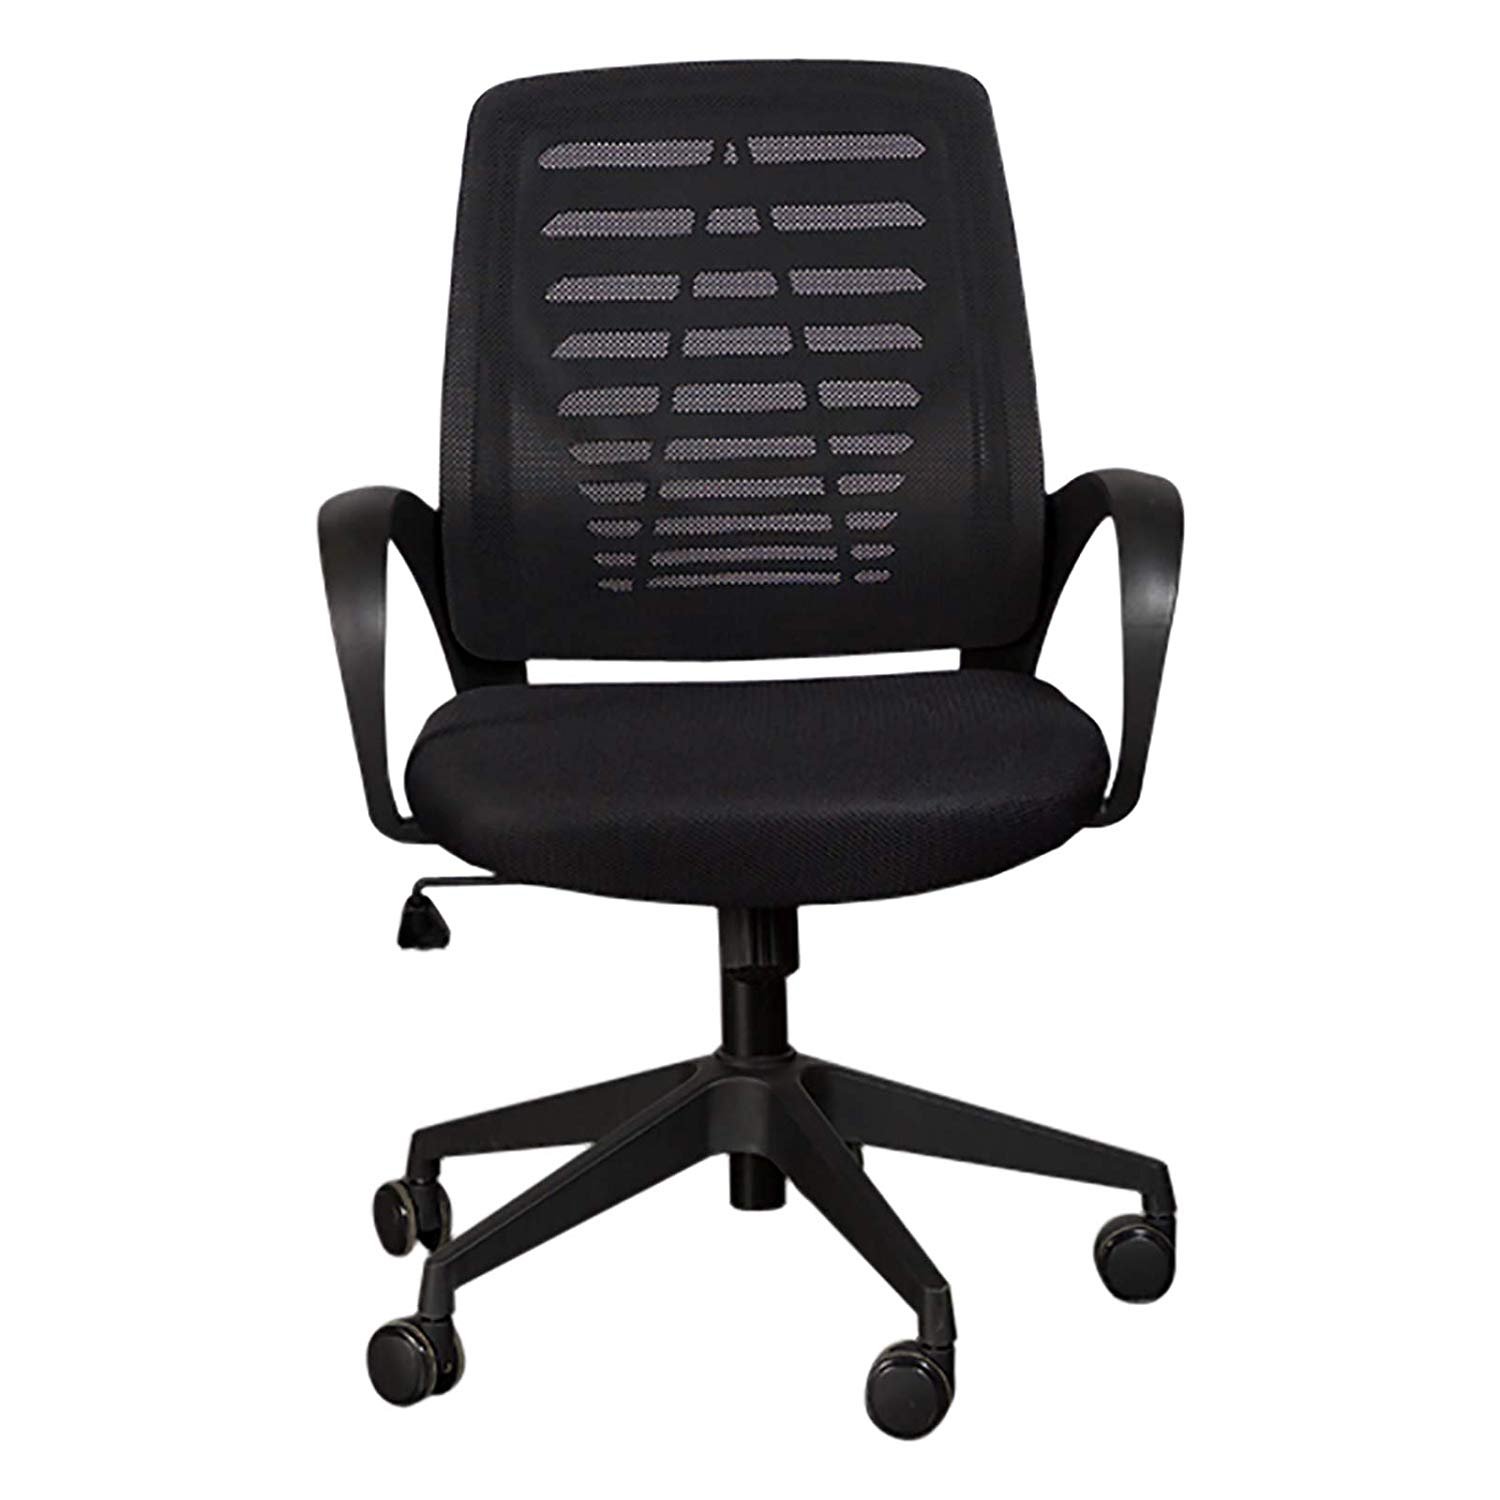 Mahmayi Sleekline 1004 Task Mesh Chair - Black (pc)